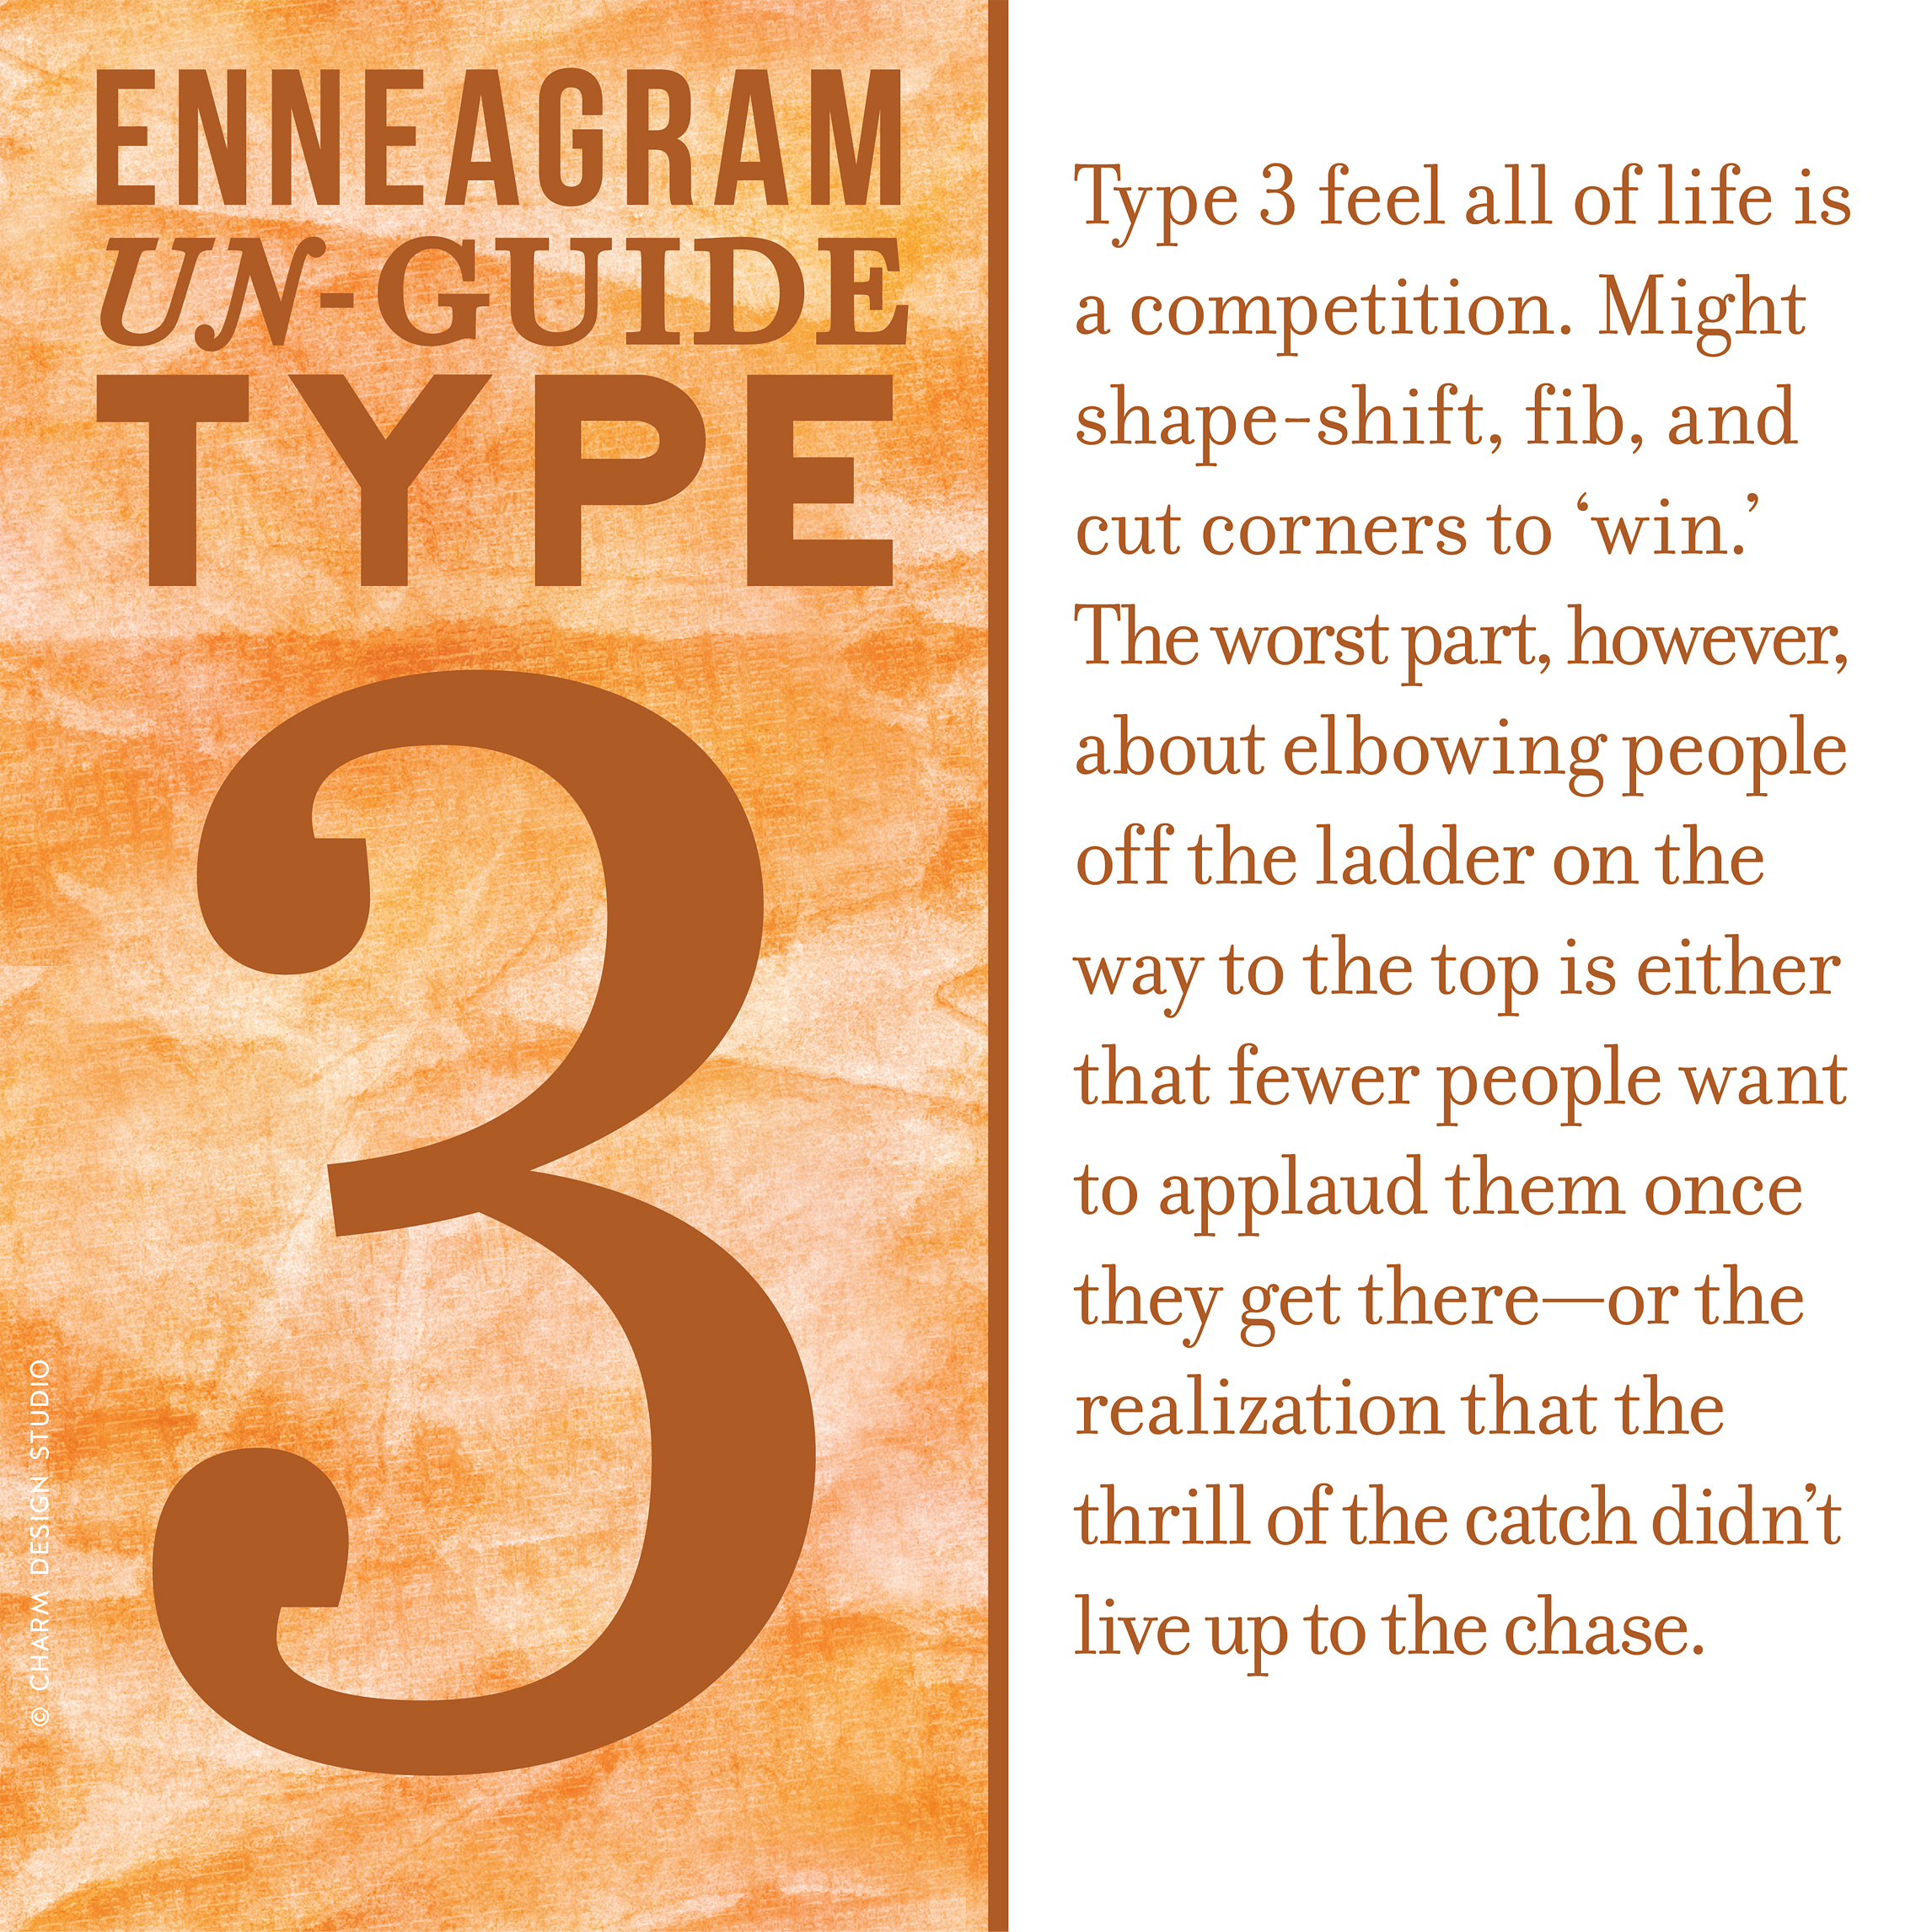 Enneagram Un-Guide: Type 3 feel all of life is a competition. Might shape-shift, fib, and cut corners to 'win.' The worst part, however, about elbowing people off the ladder on the way to the top is either that fewer people want to applaud them once they get there—or the realization that the thrill of the catch didn't live up to the chase. / Design and words © Charm Design Studio